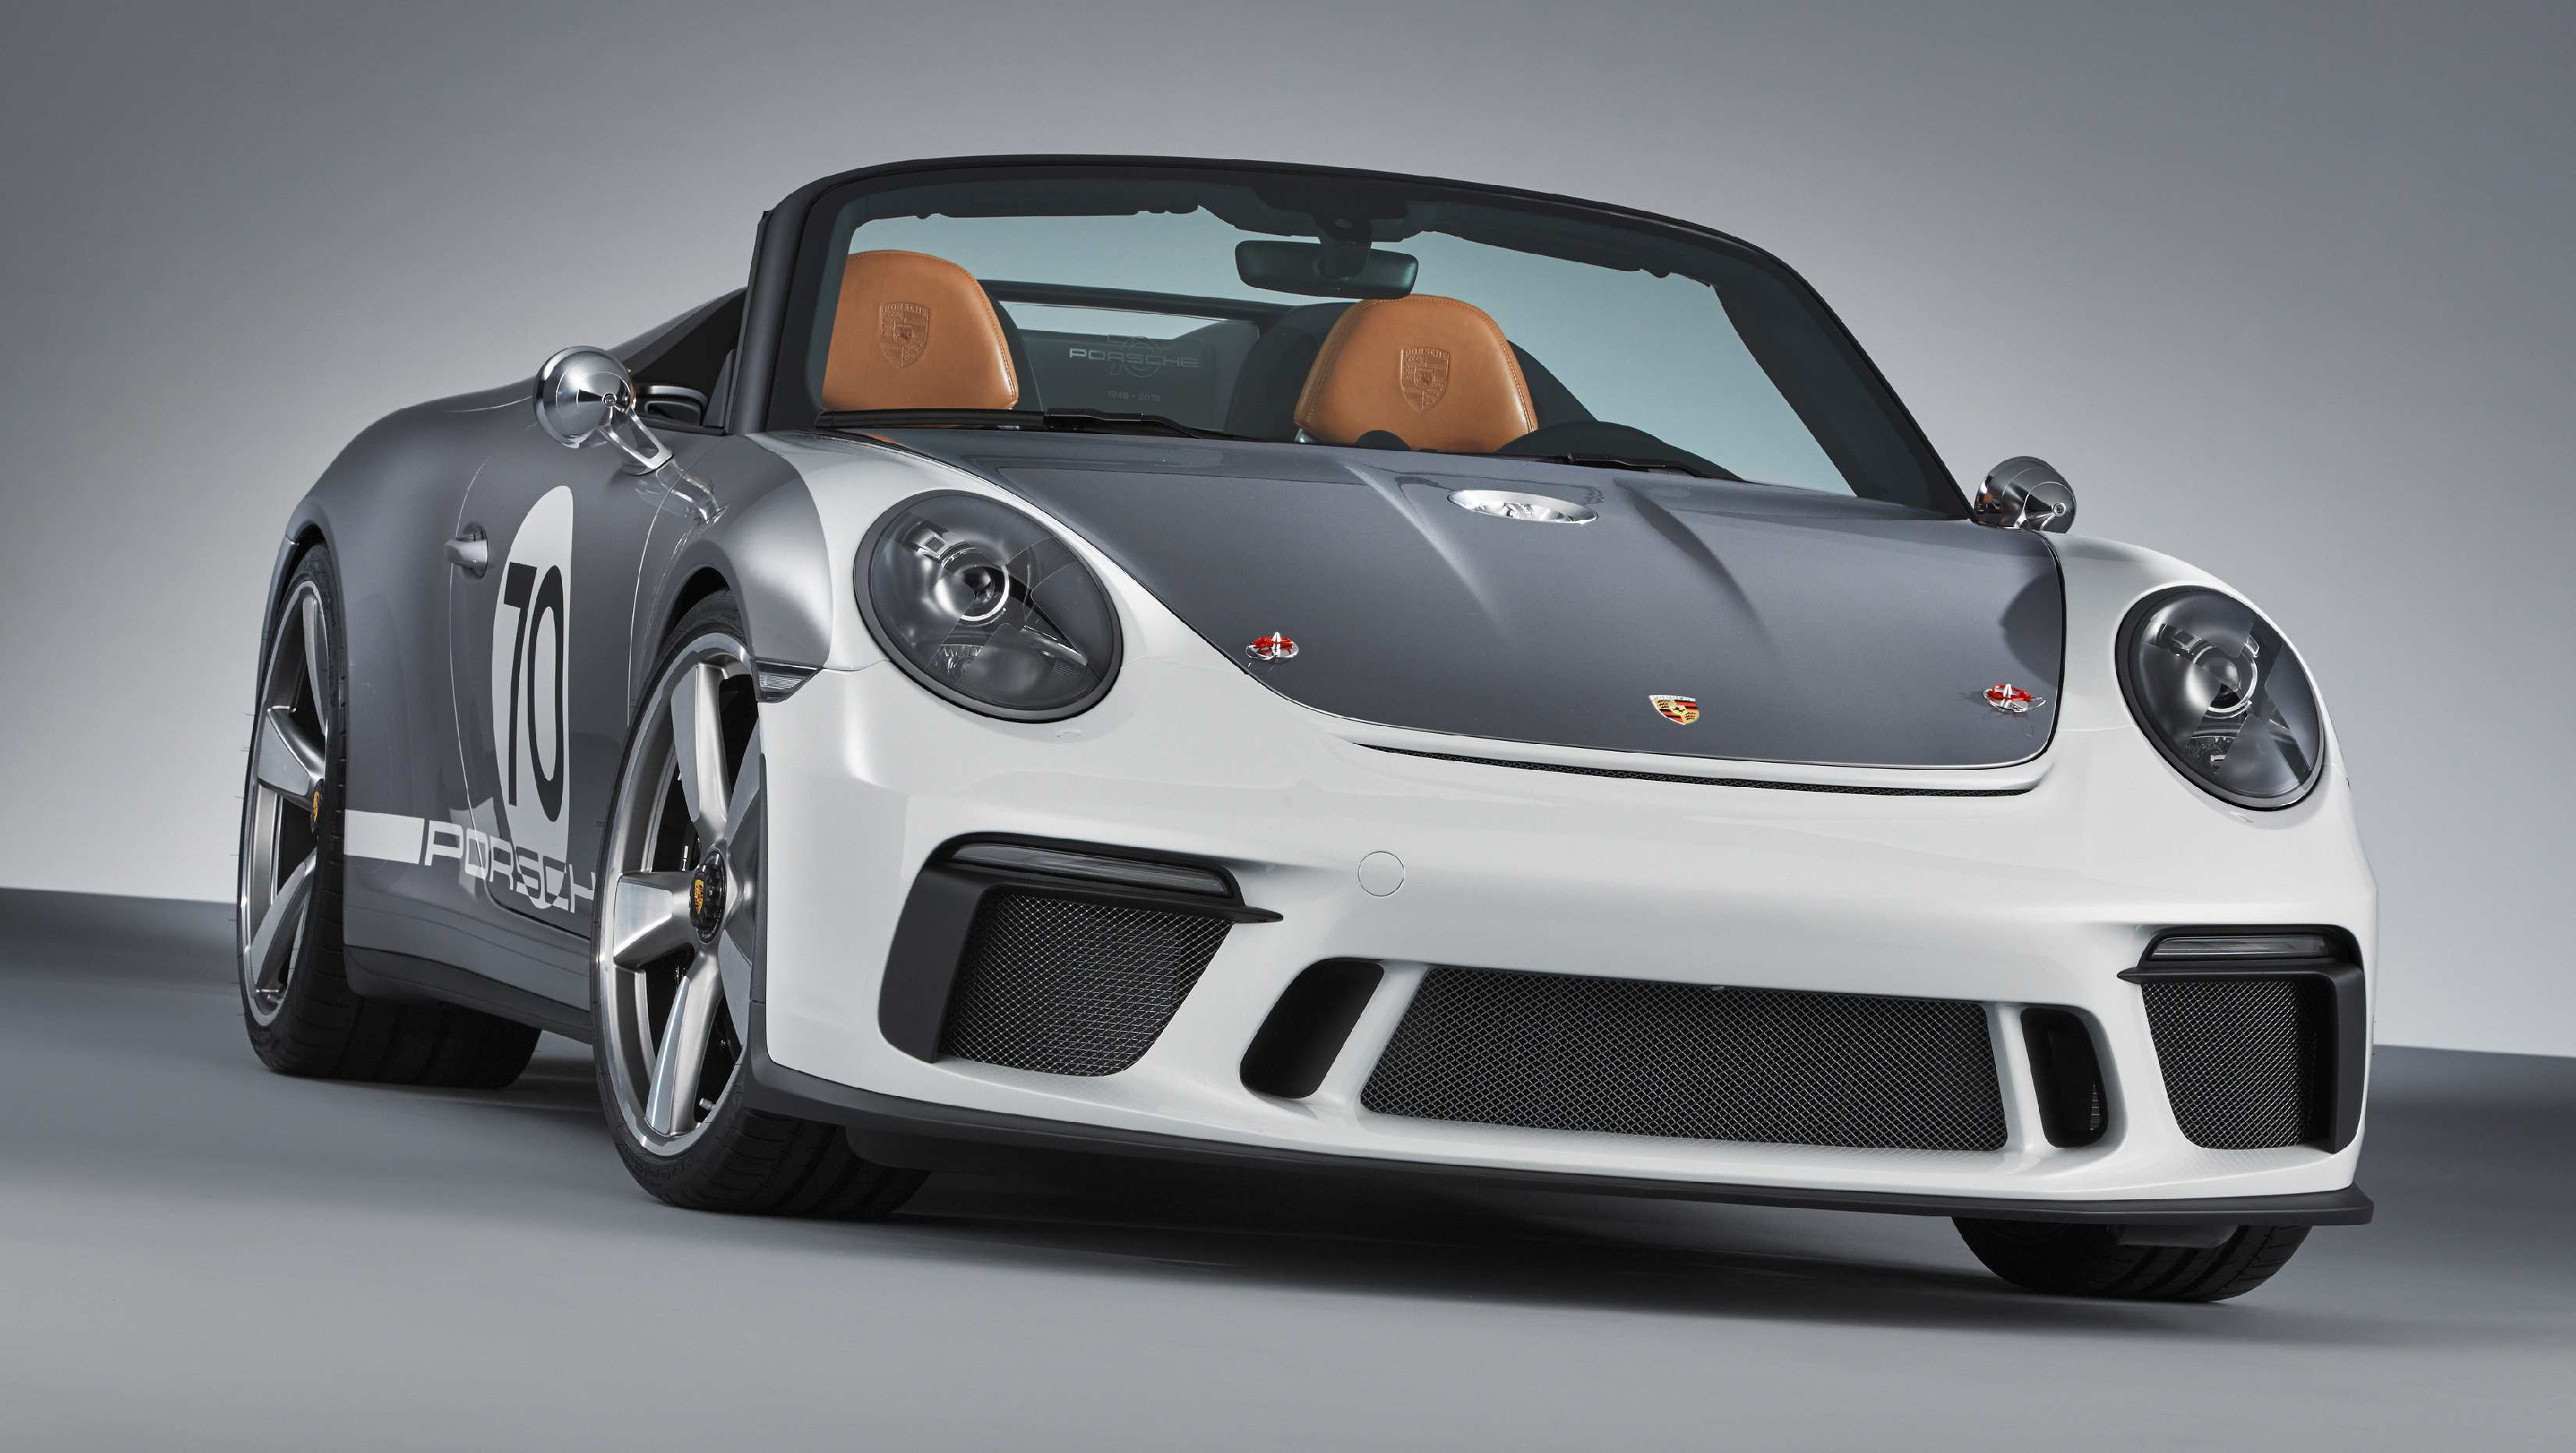 36 New 2020 Porsche Speedster Redesign and Concept with 2020 Porsche Speedster